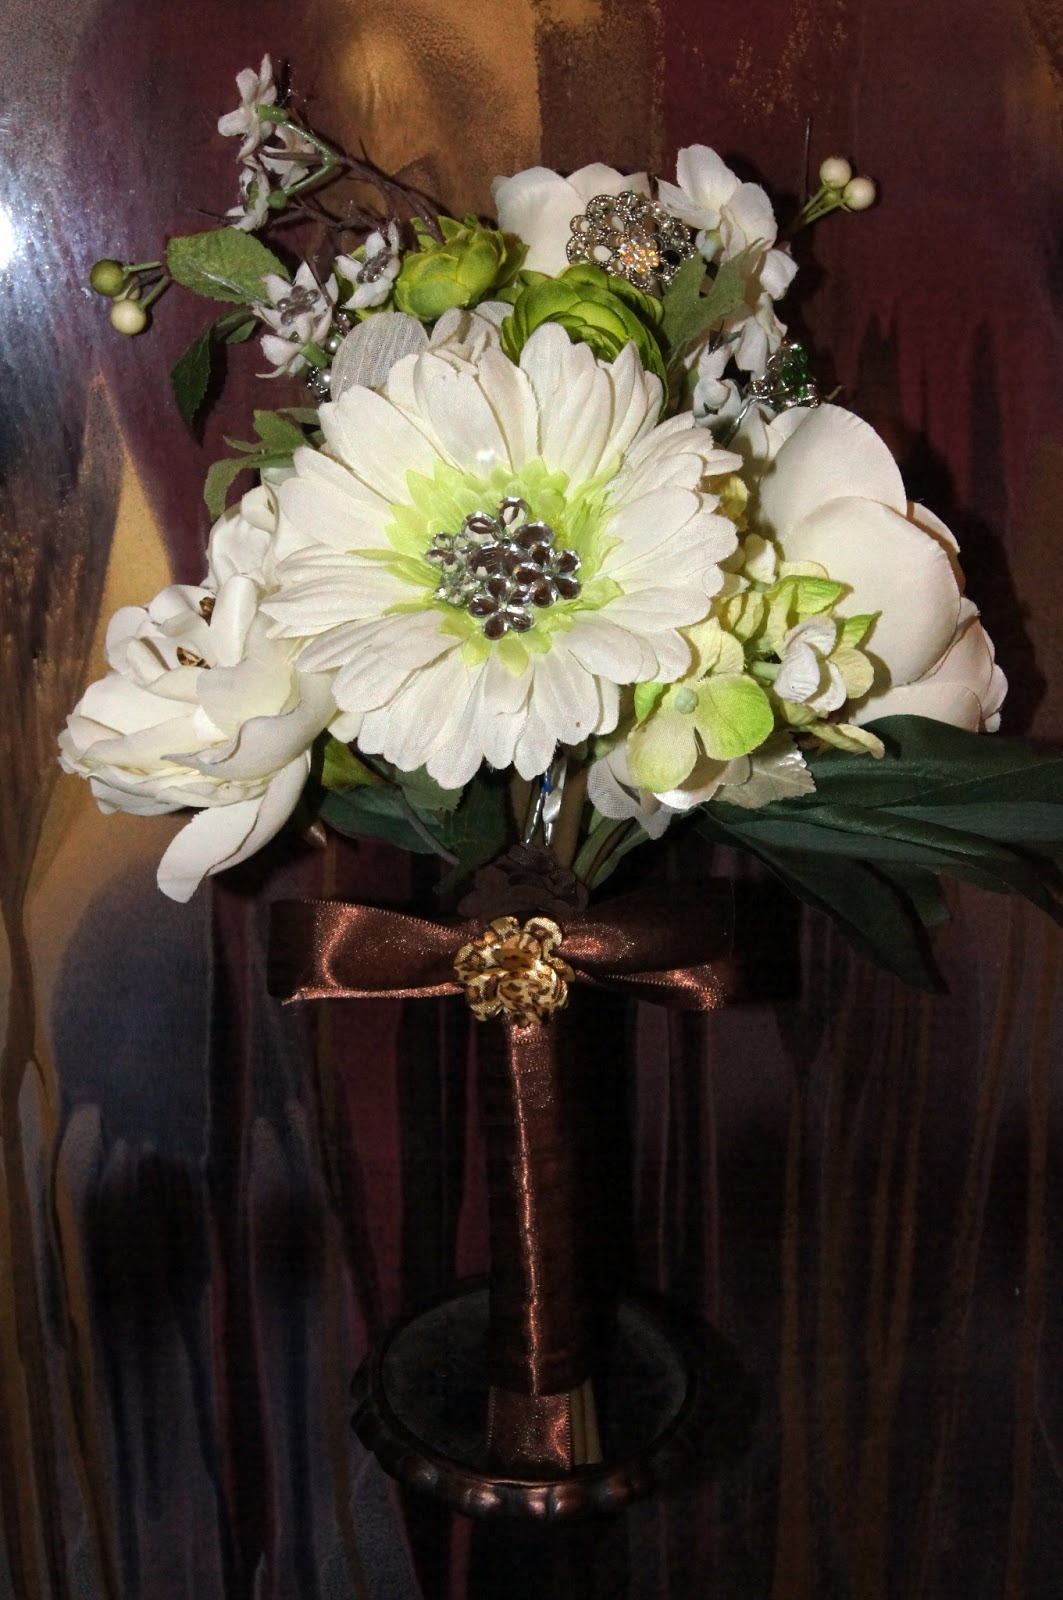 Bridal Bouquet Throwing : My wedding quest for guests the bouquets